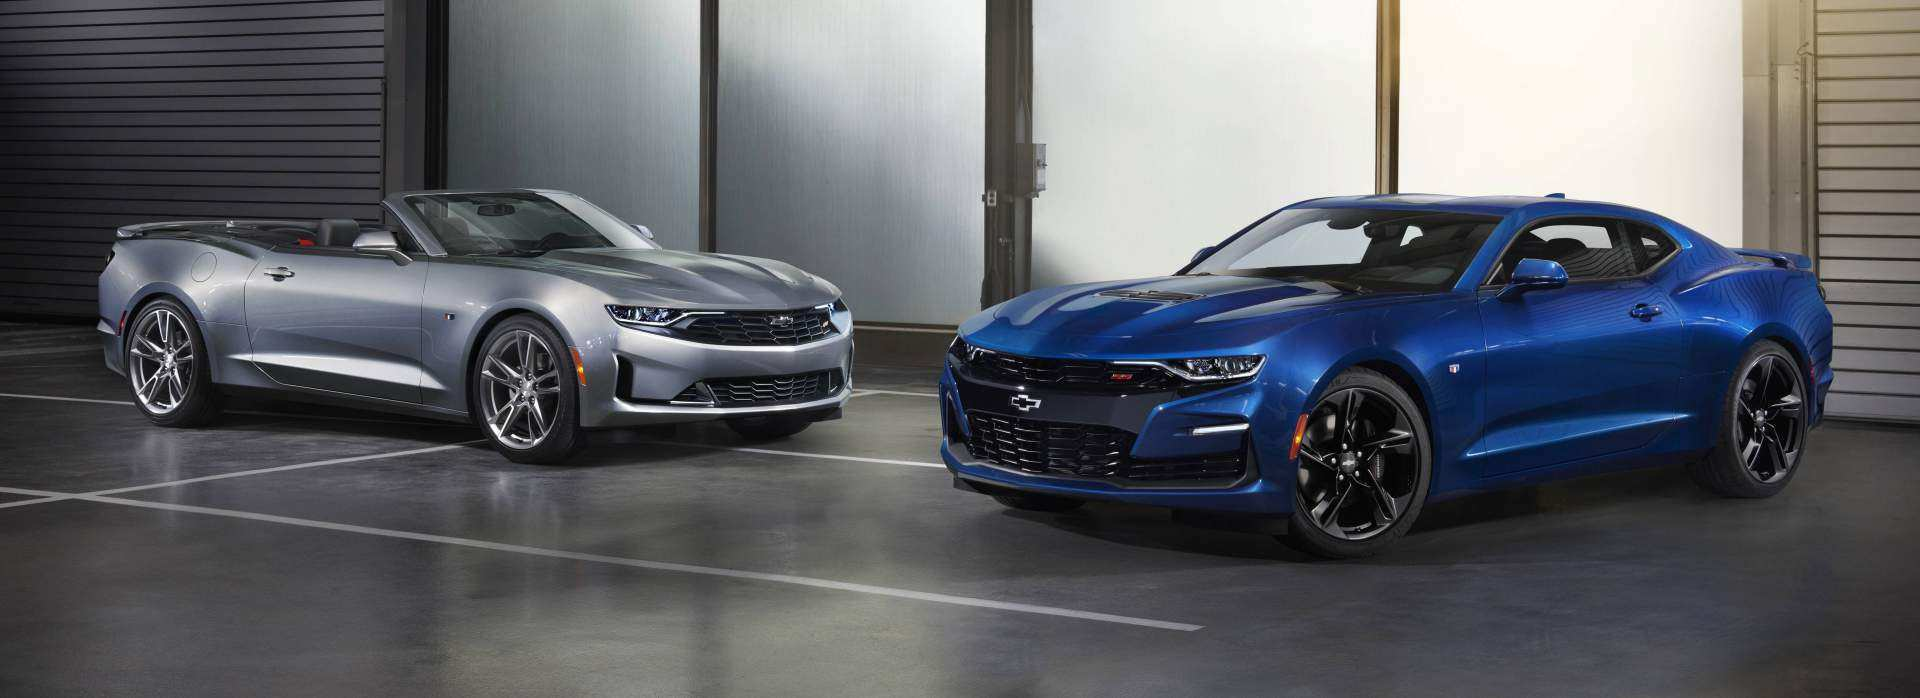 79 The 2020 Chevy Camaro Redesign And Concept